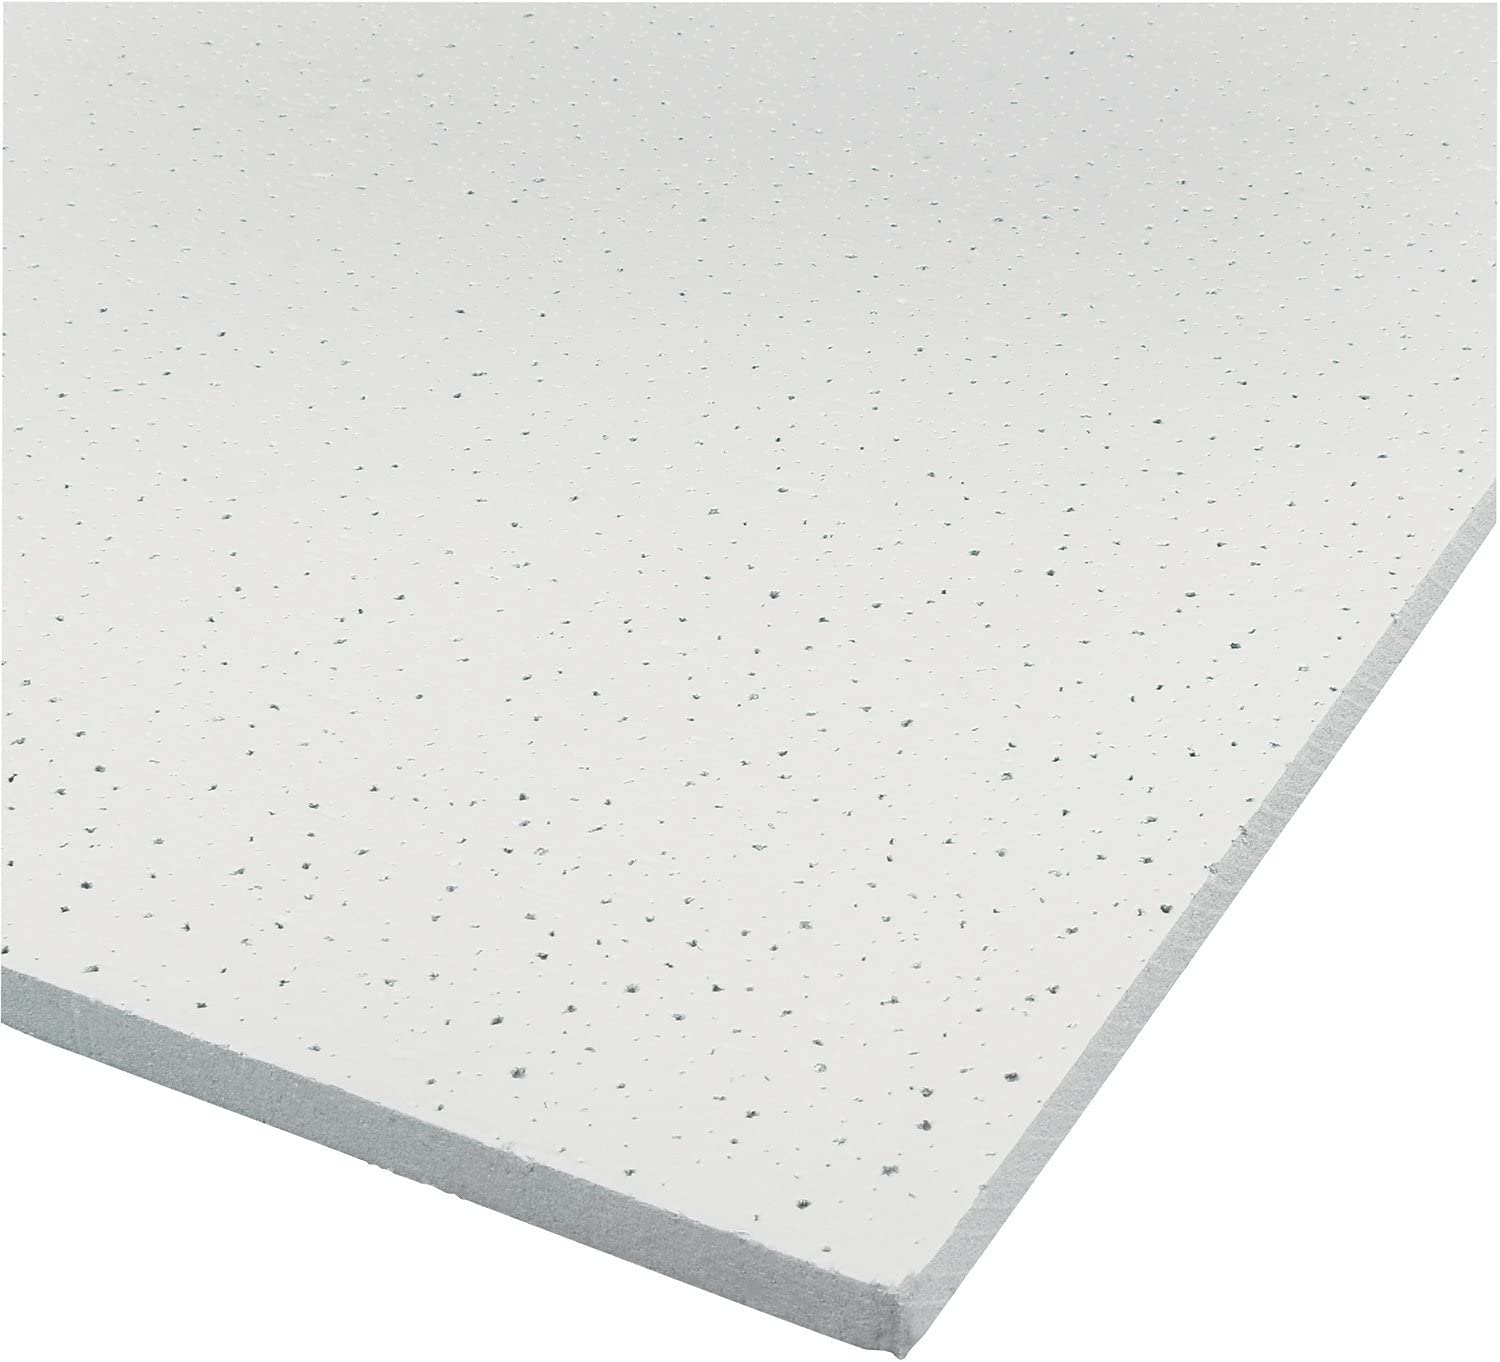 Carton of 10 Genesis Easy Installation Printed Pro Lay-in White Ceiling Tile//Ceiling Panel 2 x 4 Tile